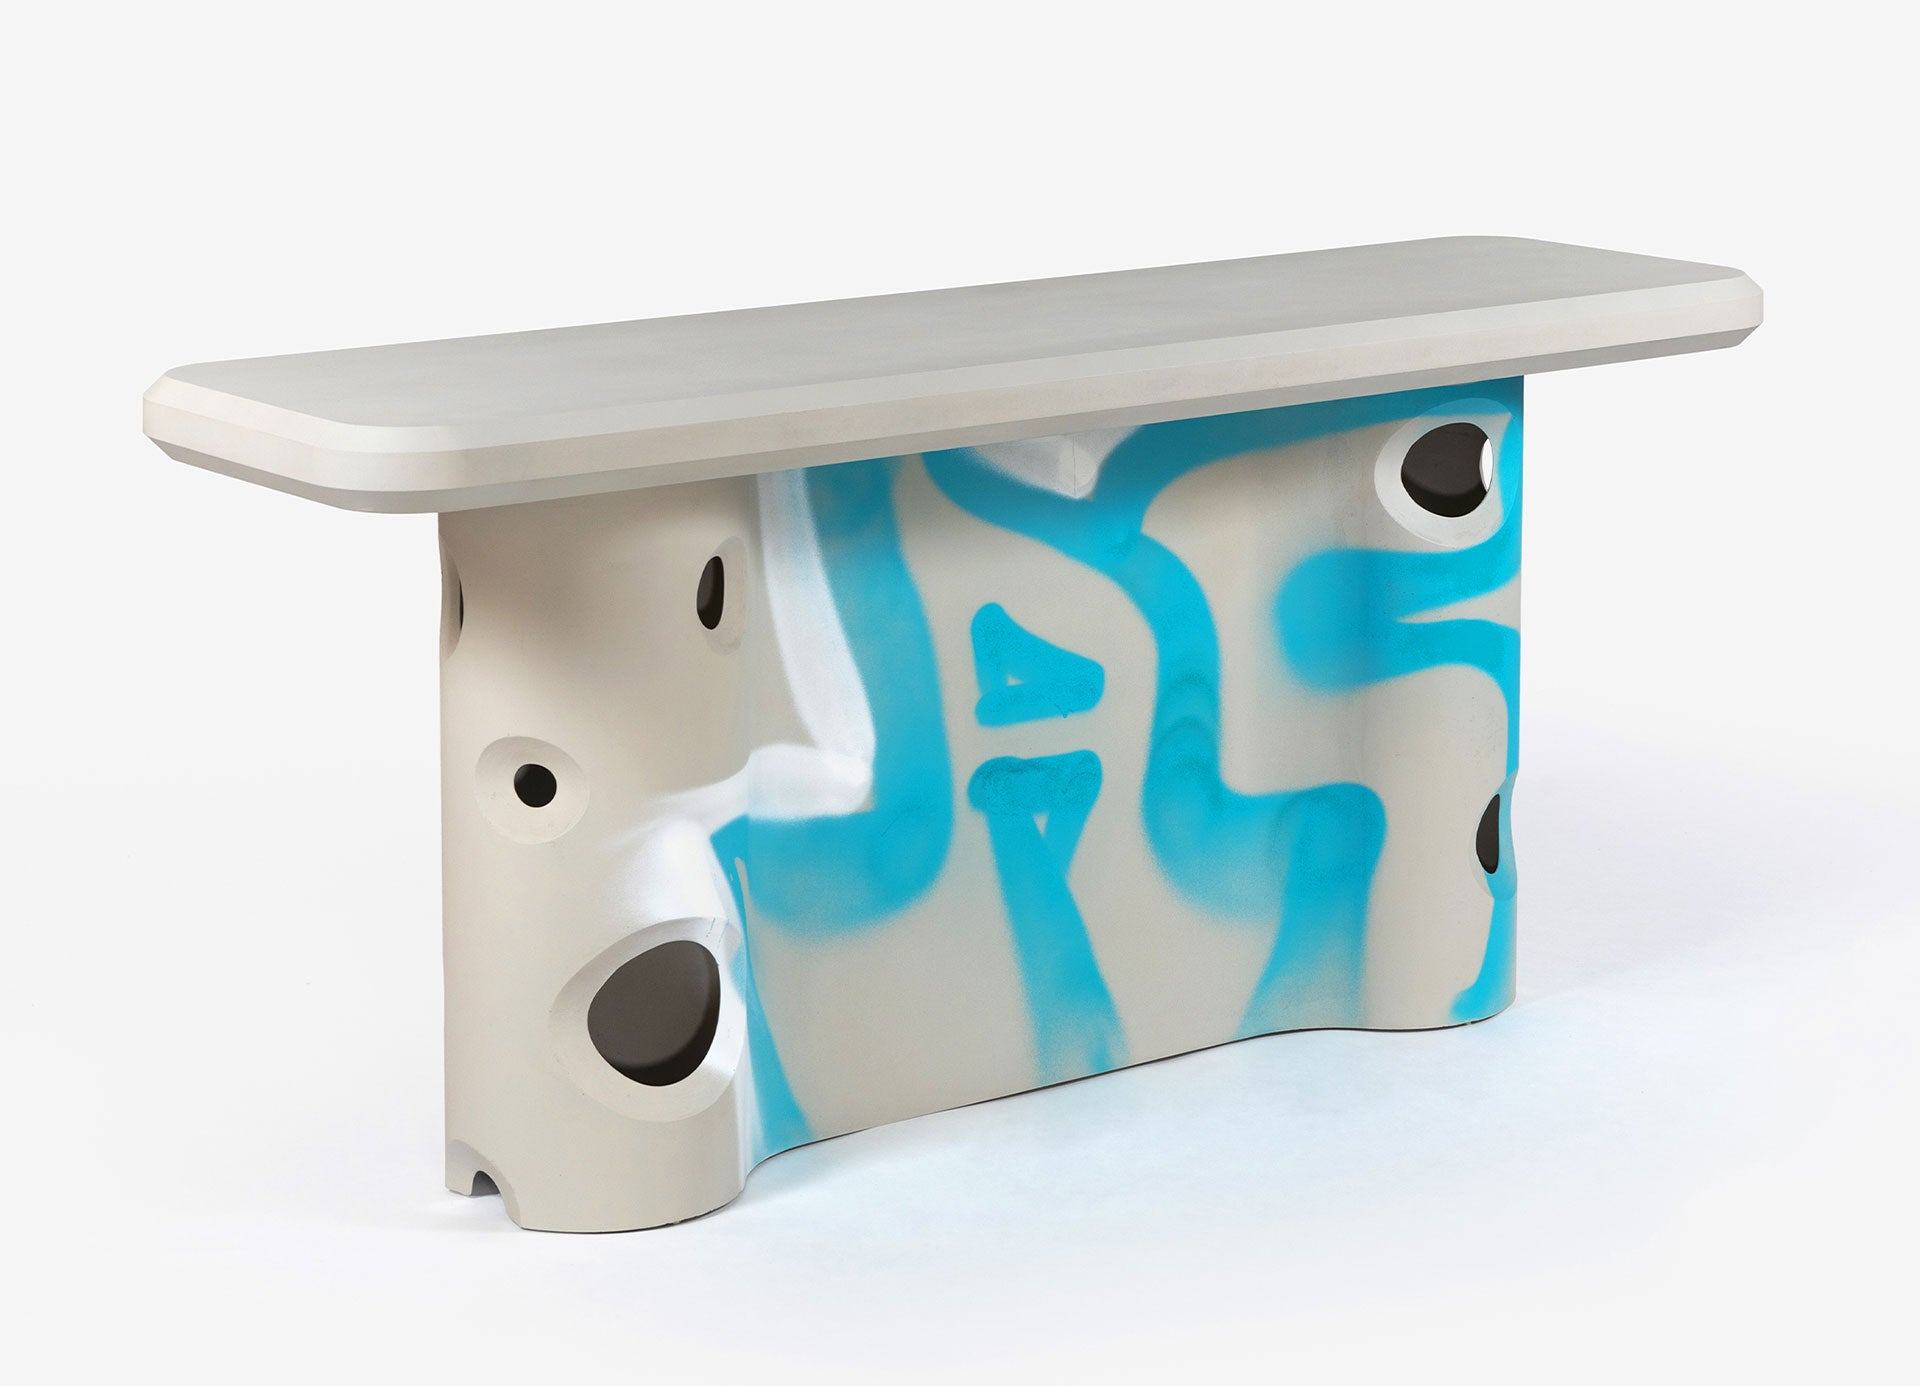 Efflorescence Console/ Virgil Abloh, 2020/ Concrete and resin with hand-painted graffiti/ Courtesy of Galerie kreo, Alexandra de Cossette